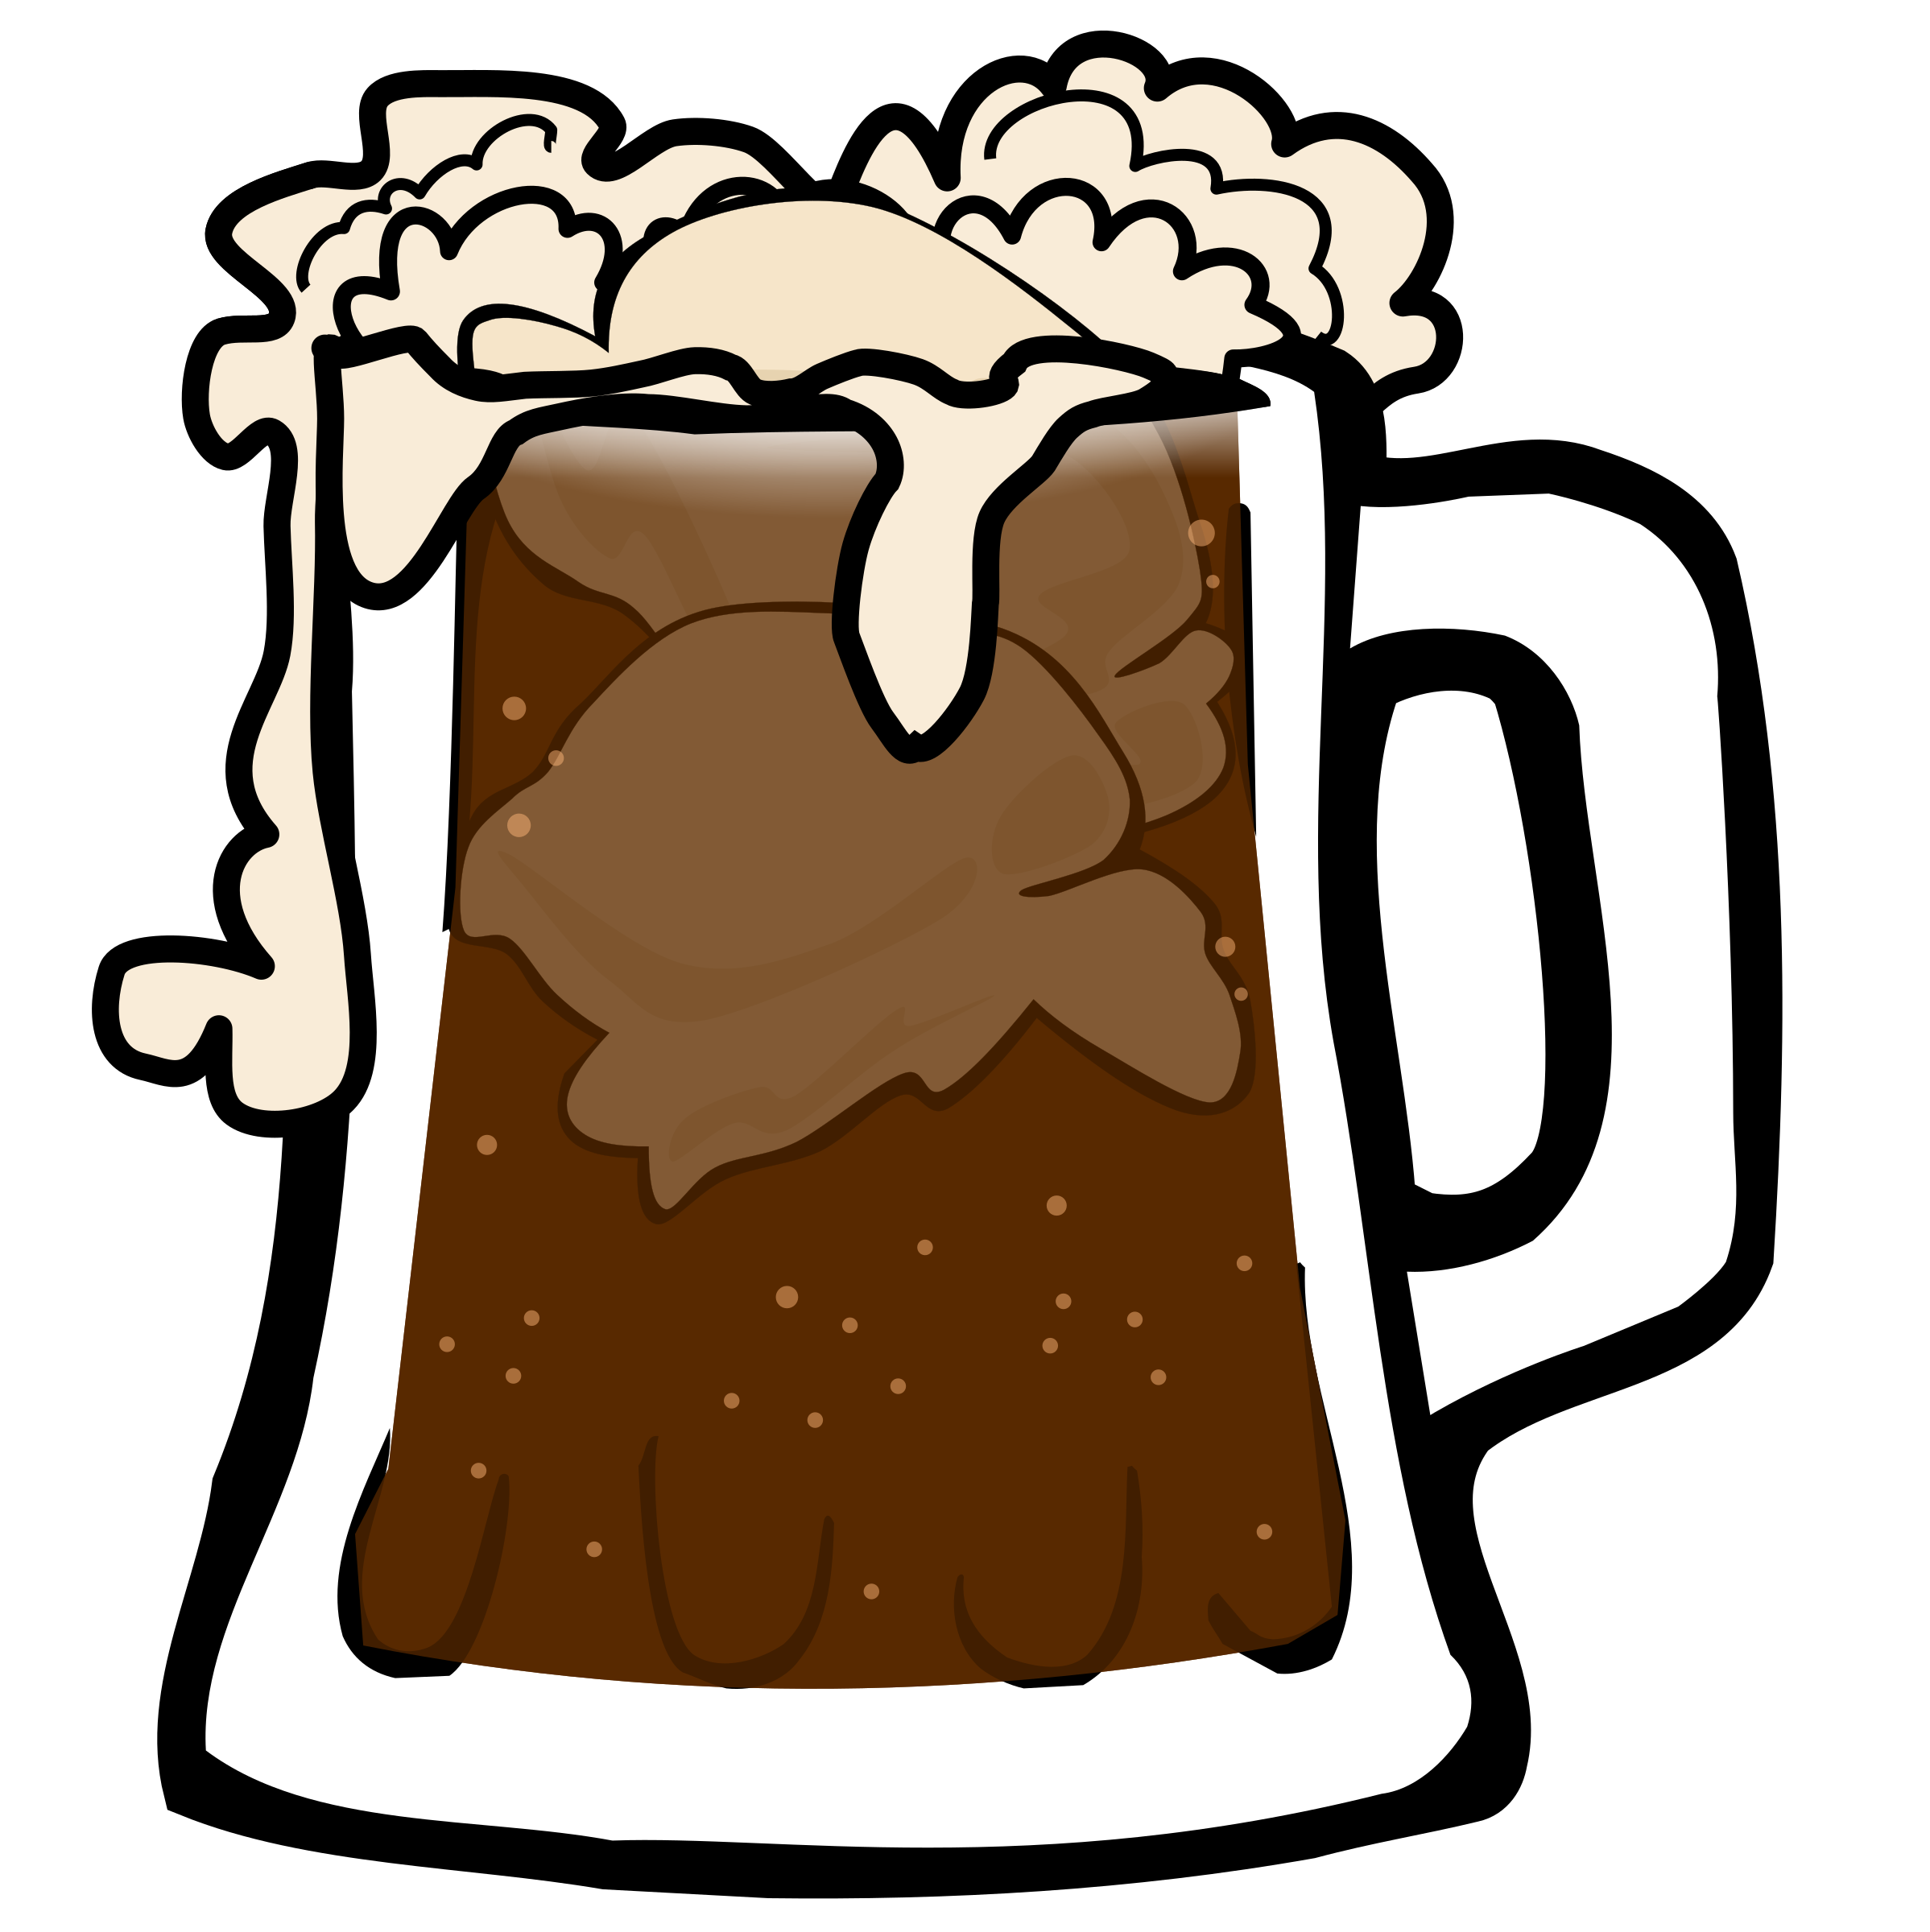 This free Icons Png design of Root Beer Float PlusPng.com  - Root Beer Float PNG Free